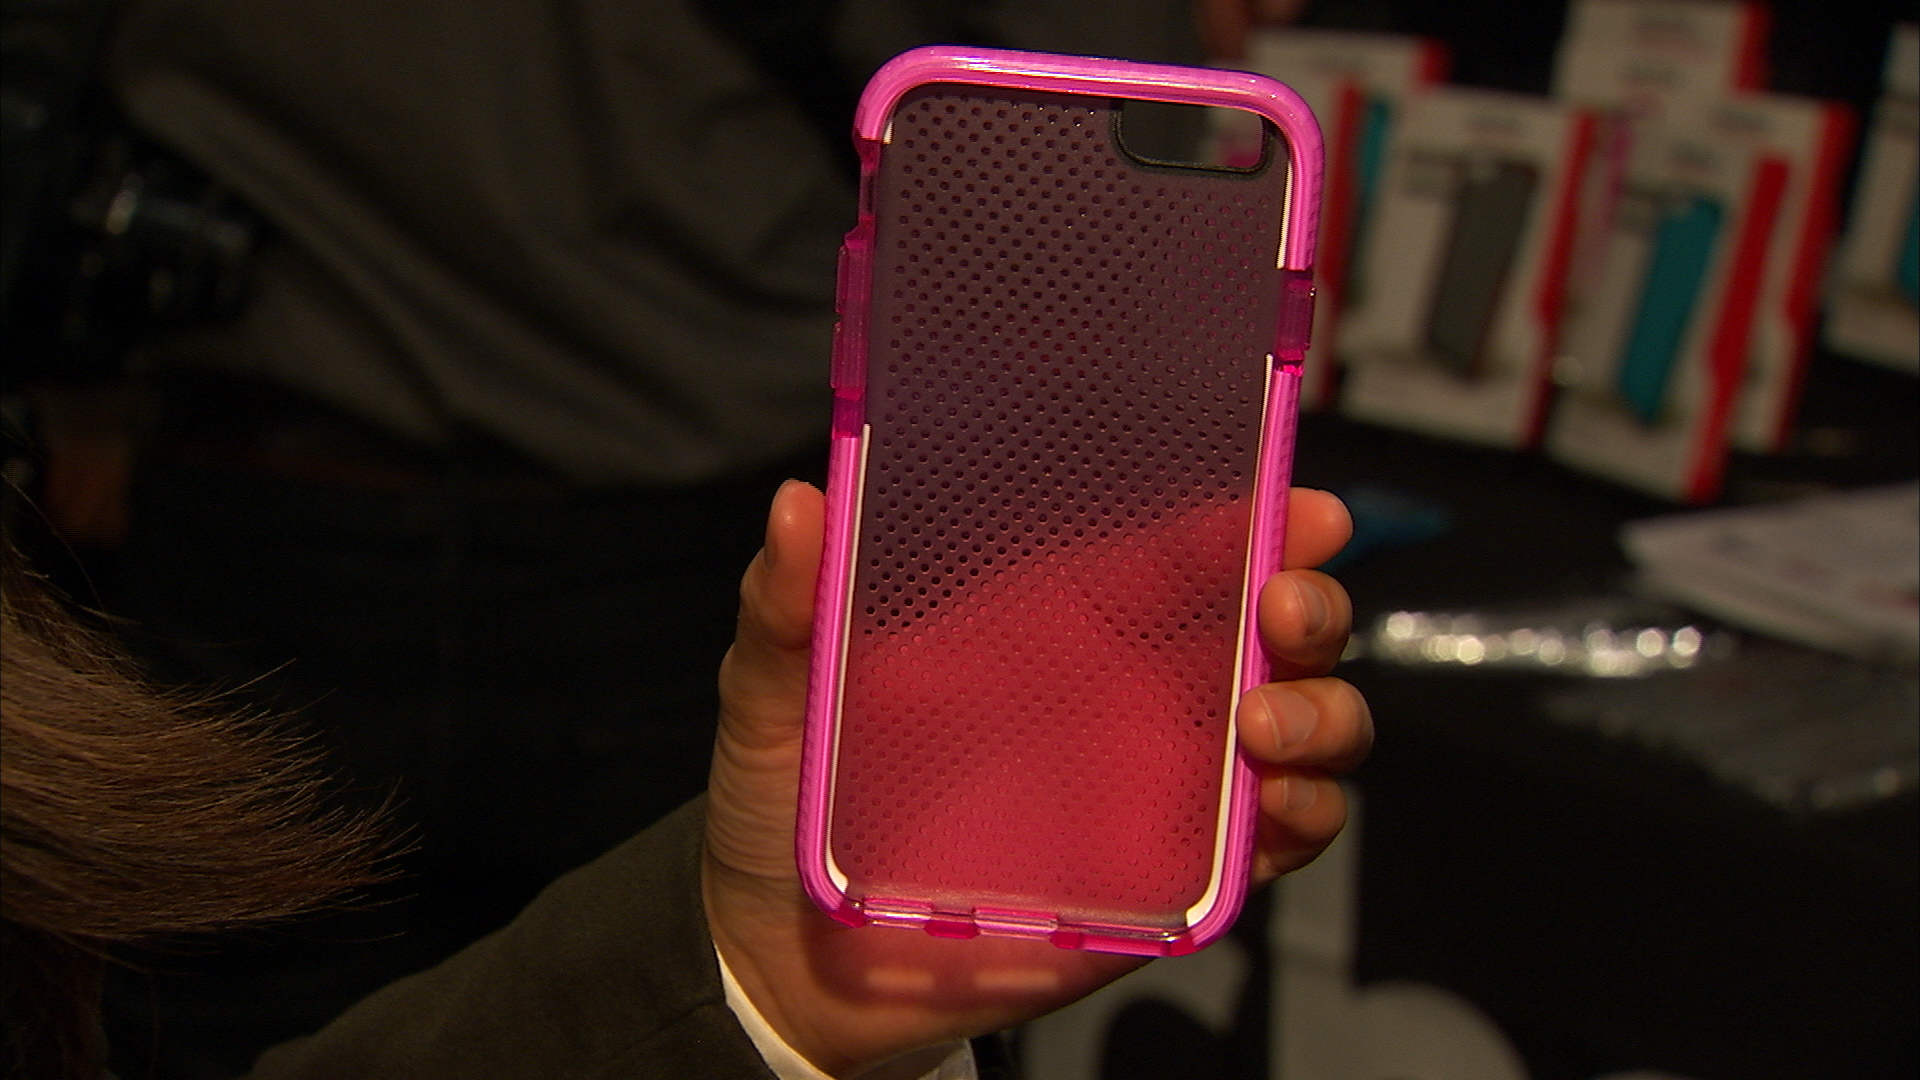 Video: Tech21's Evo Mesh case protects your iPhone 6 from bumps and falls